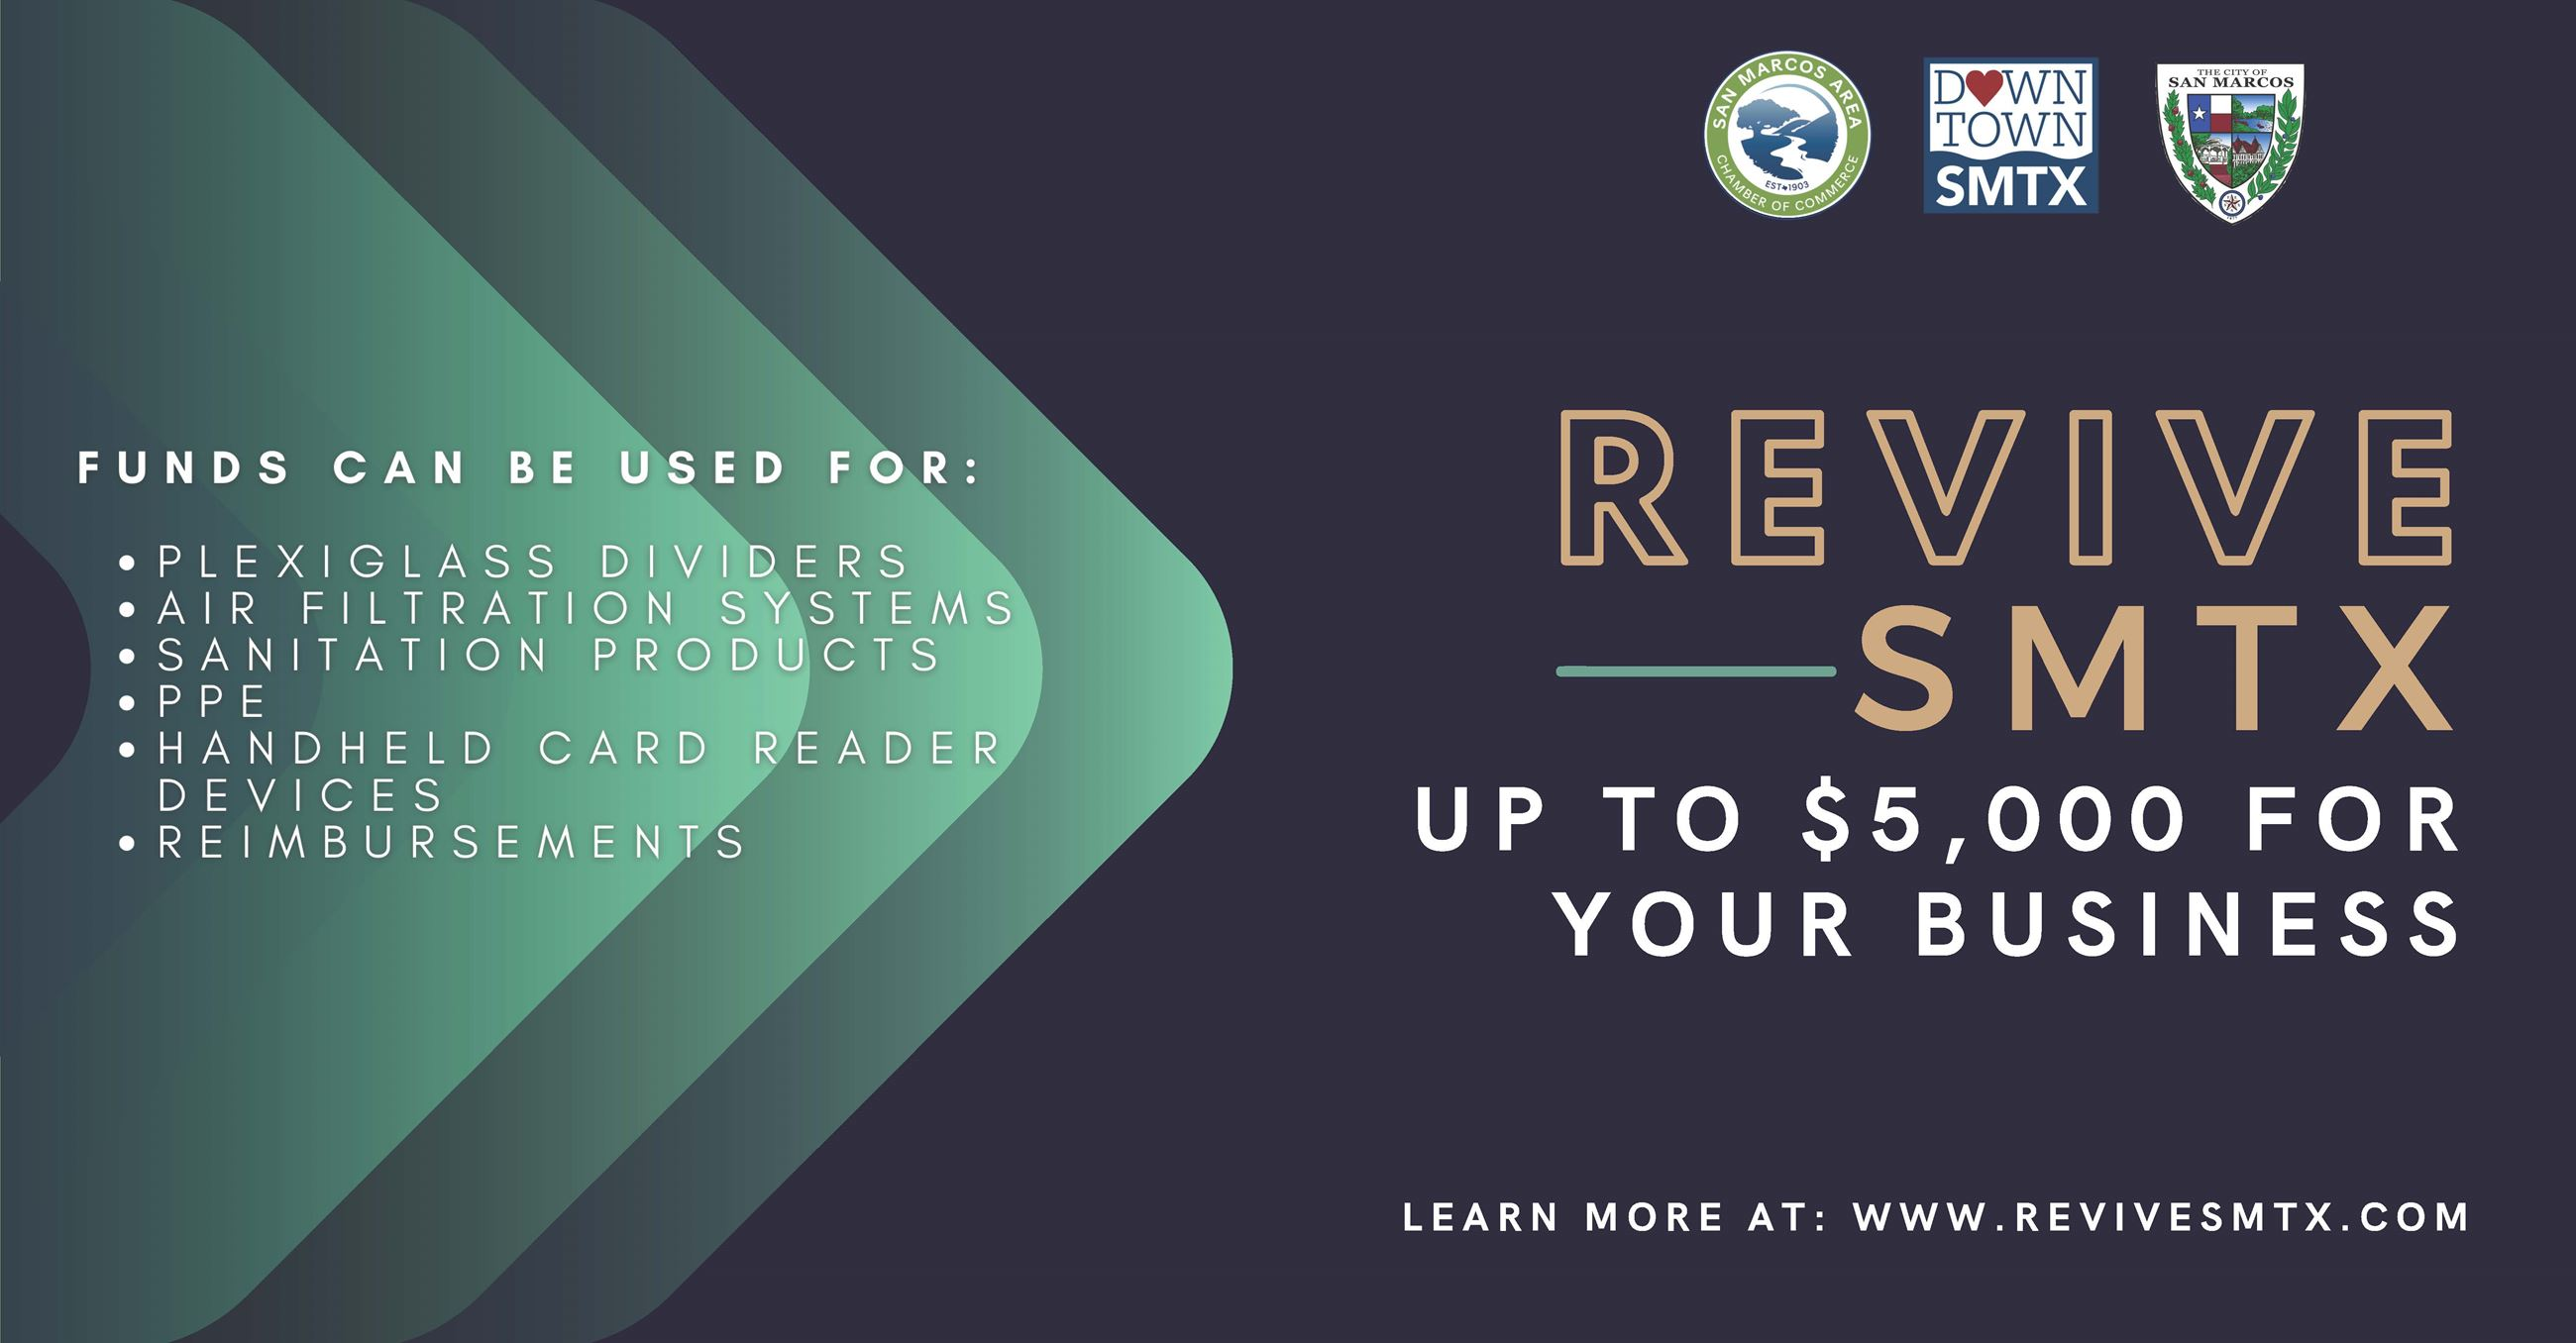 Revive SMTX UP TO $5,000 for your business AD